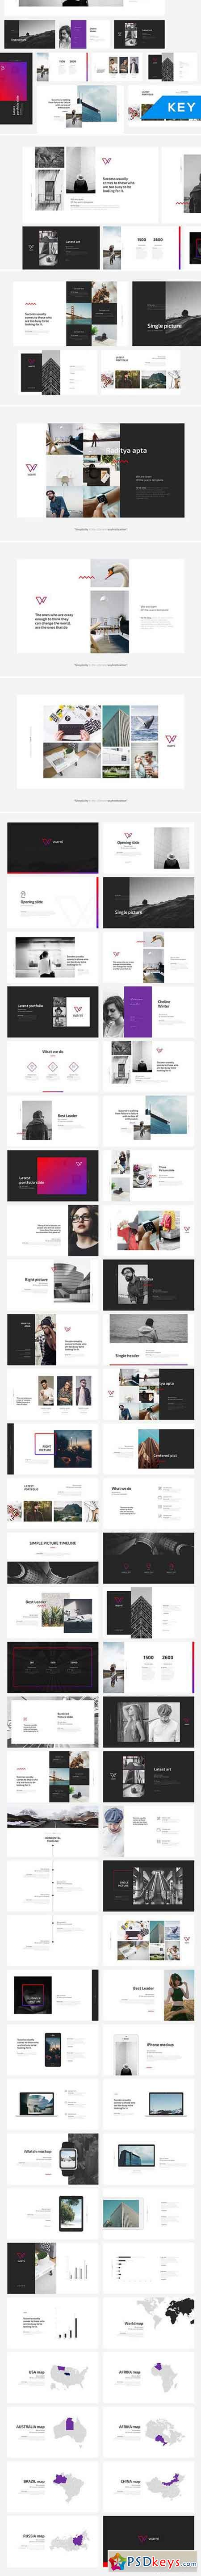 Warni Keynote Template 1021835